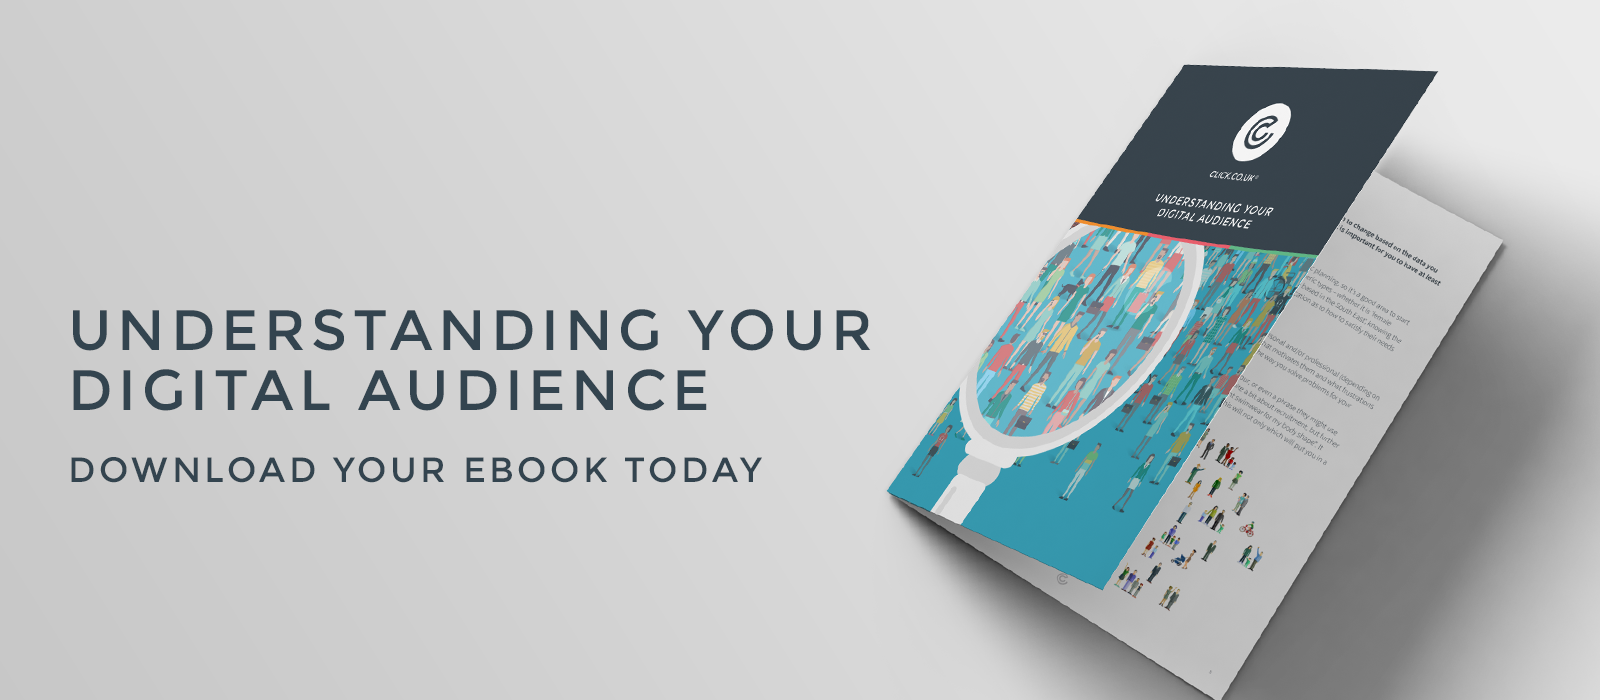 understanding your digital audience landing page header